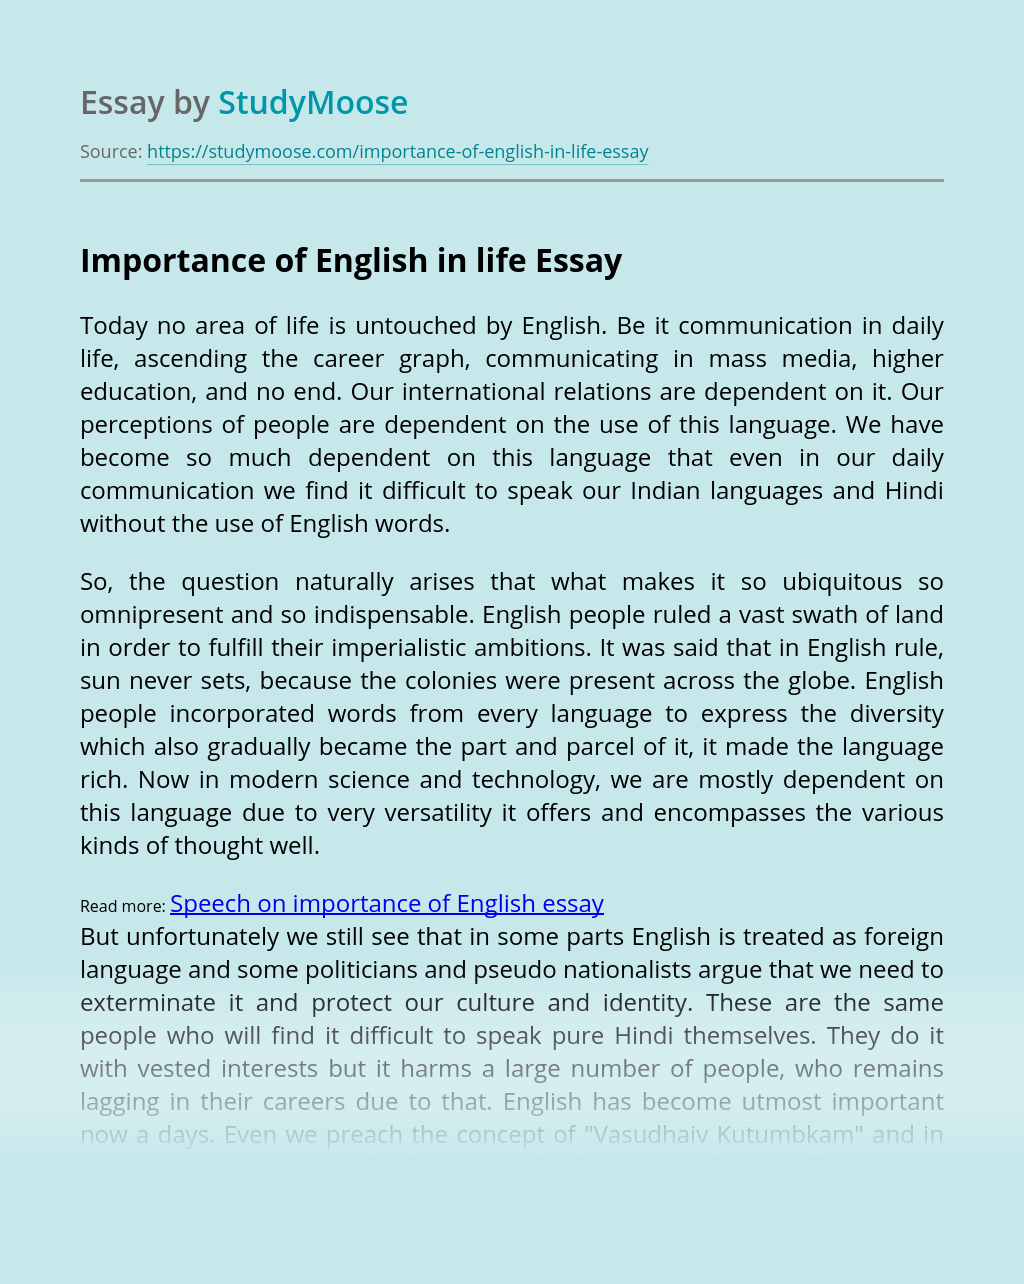 Importance of English in life